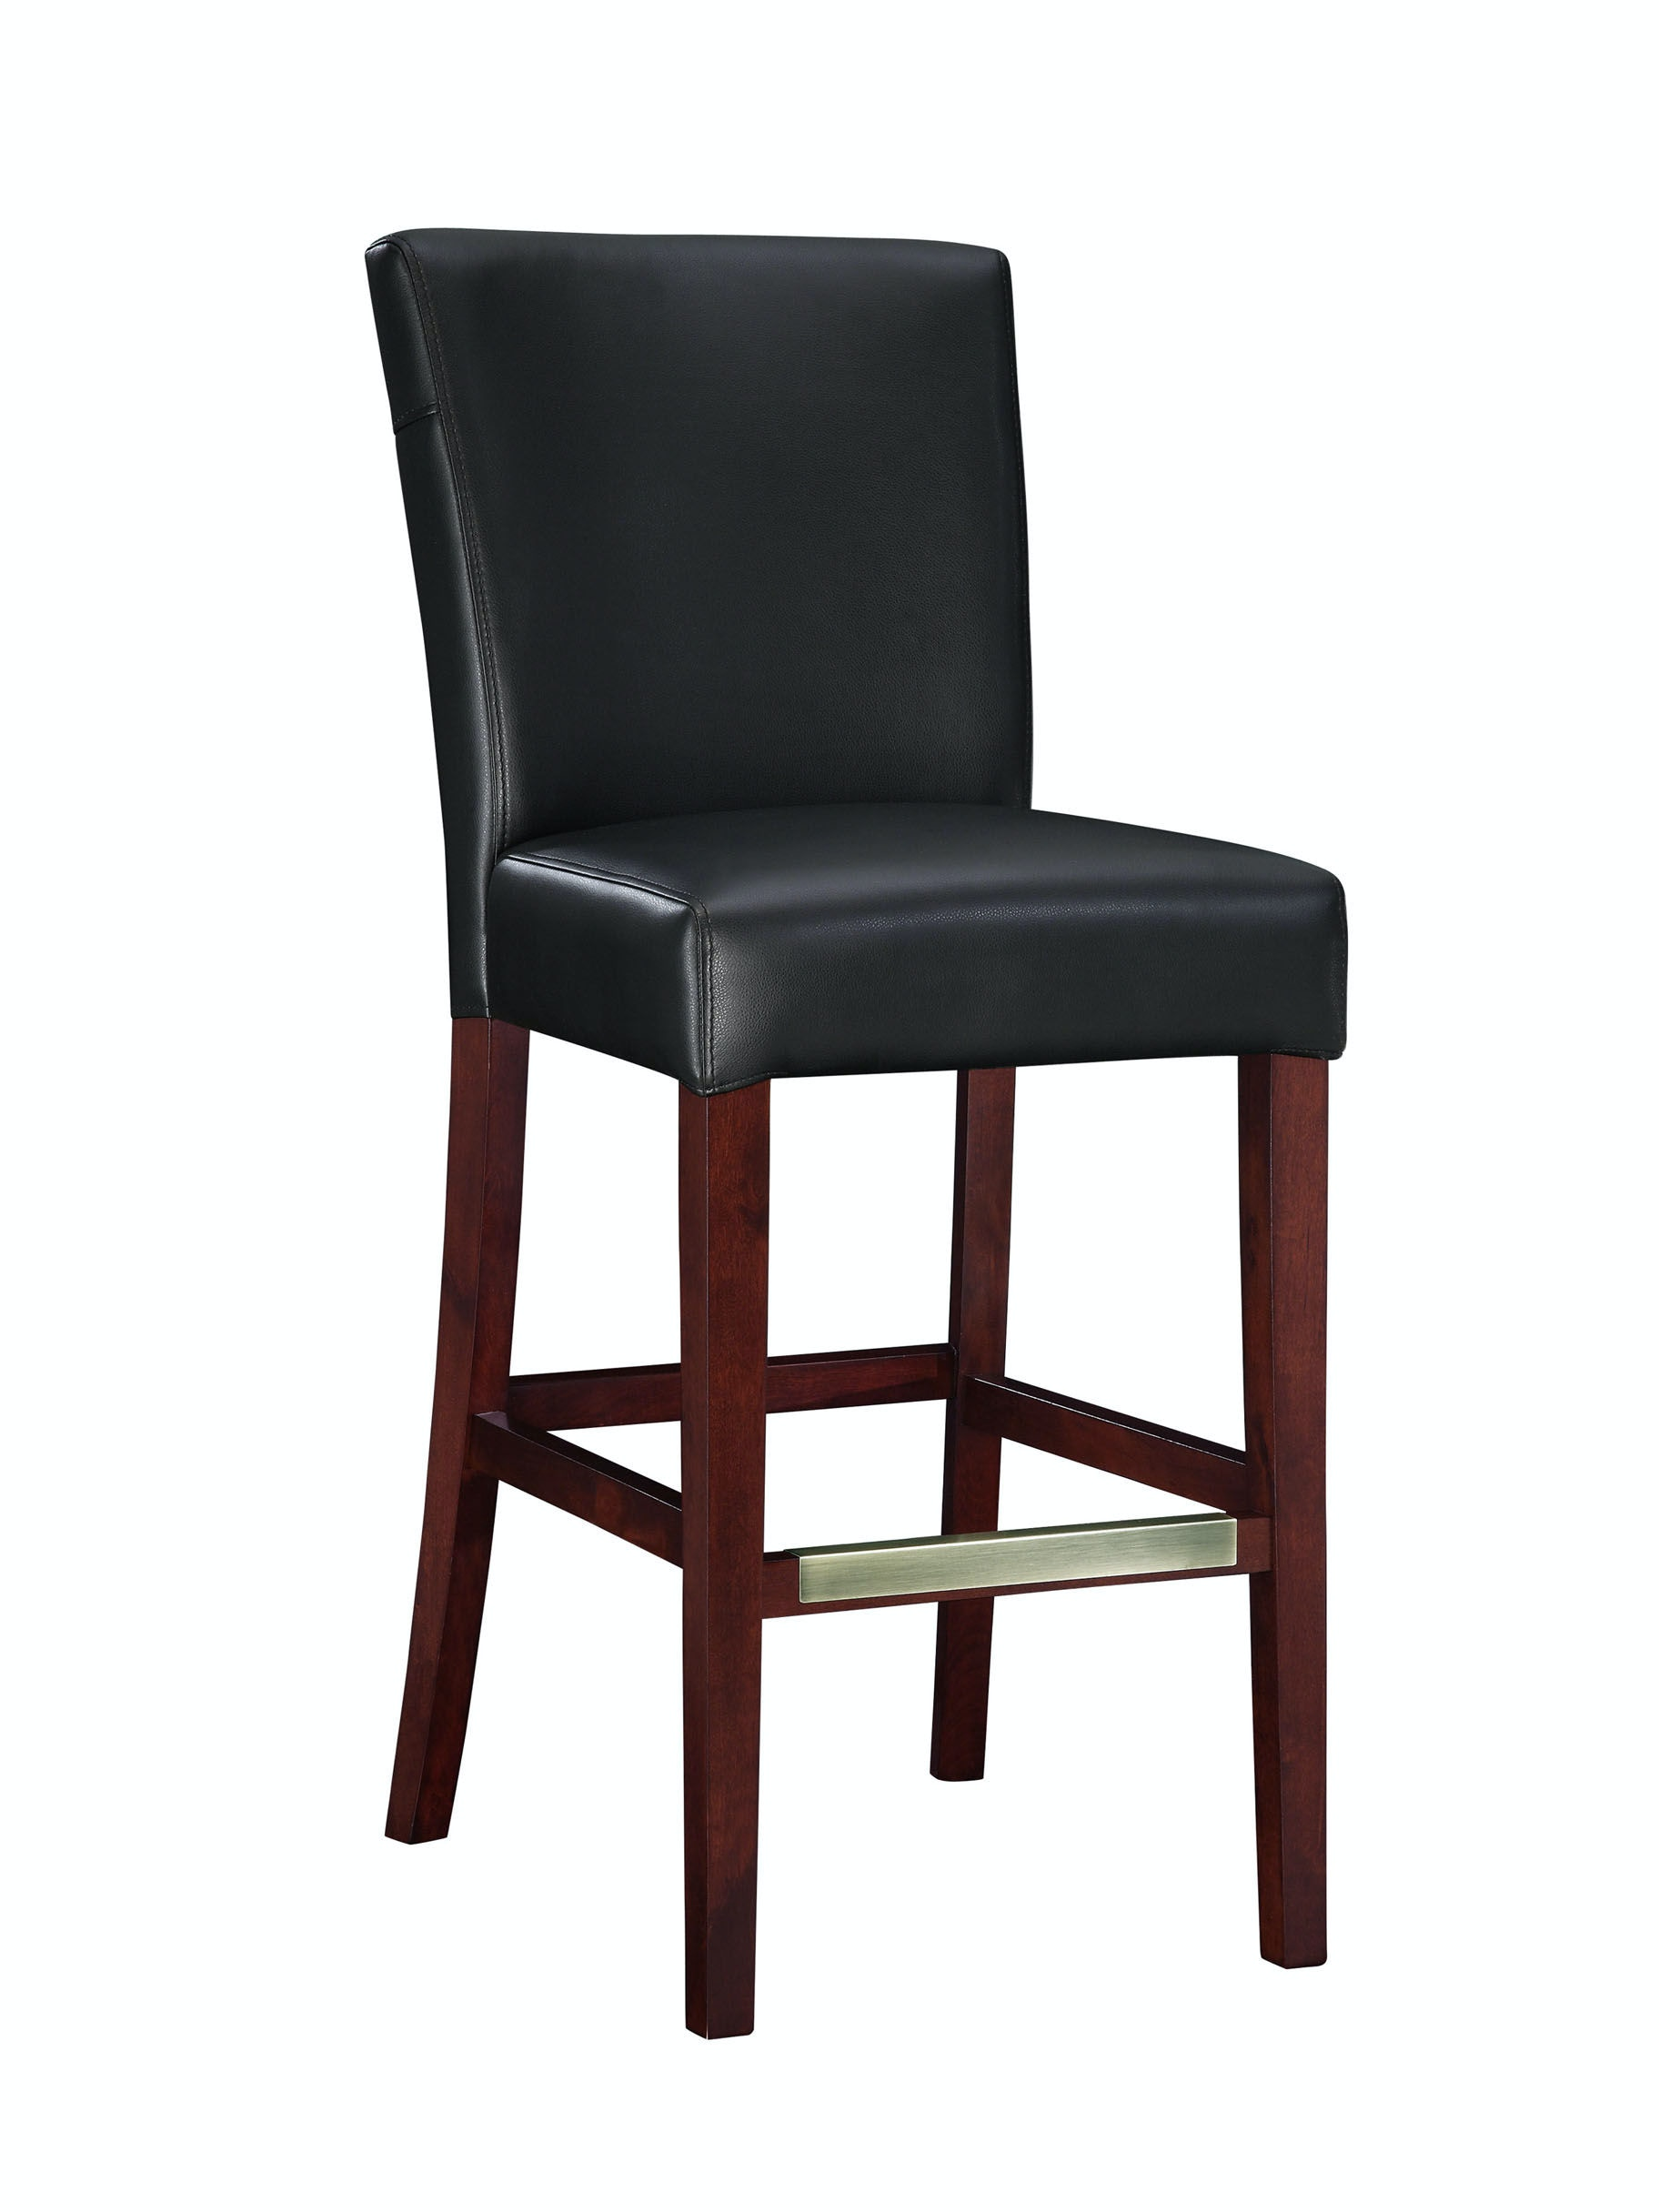 Powell Furniture Bar And Game Room Black Bonded Leather Bar Stool